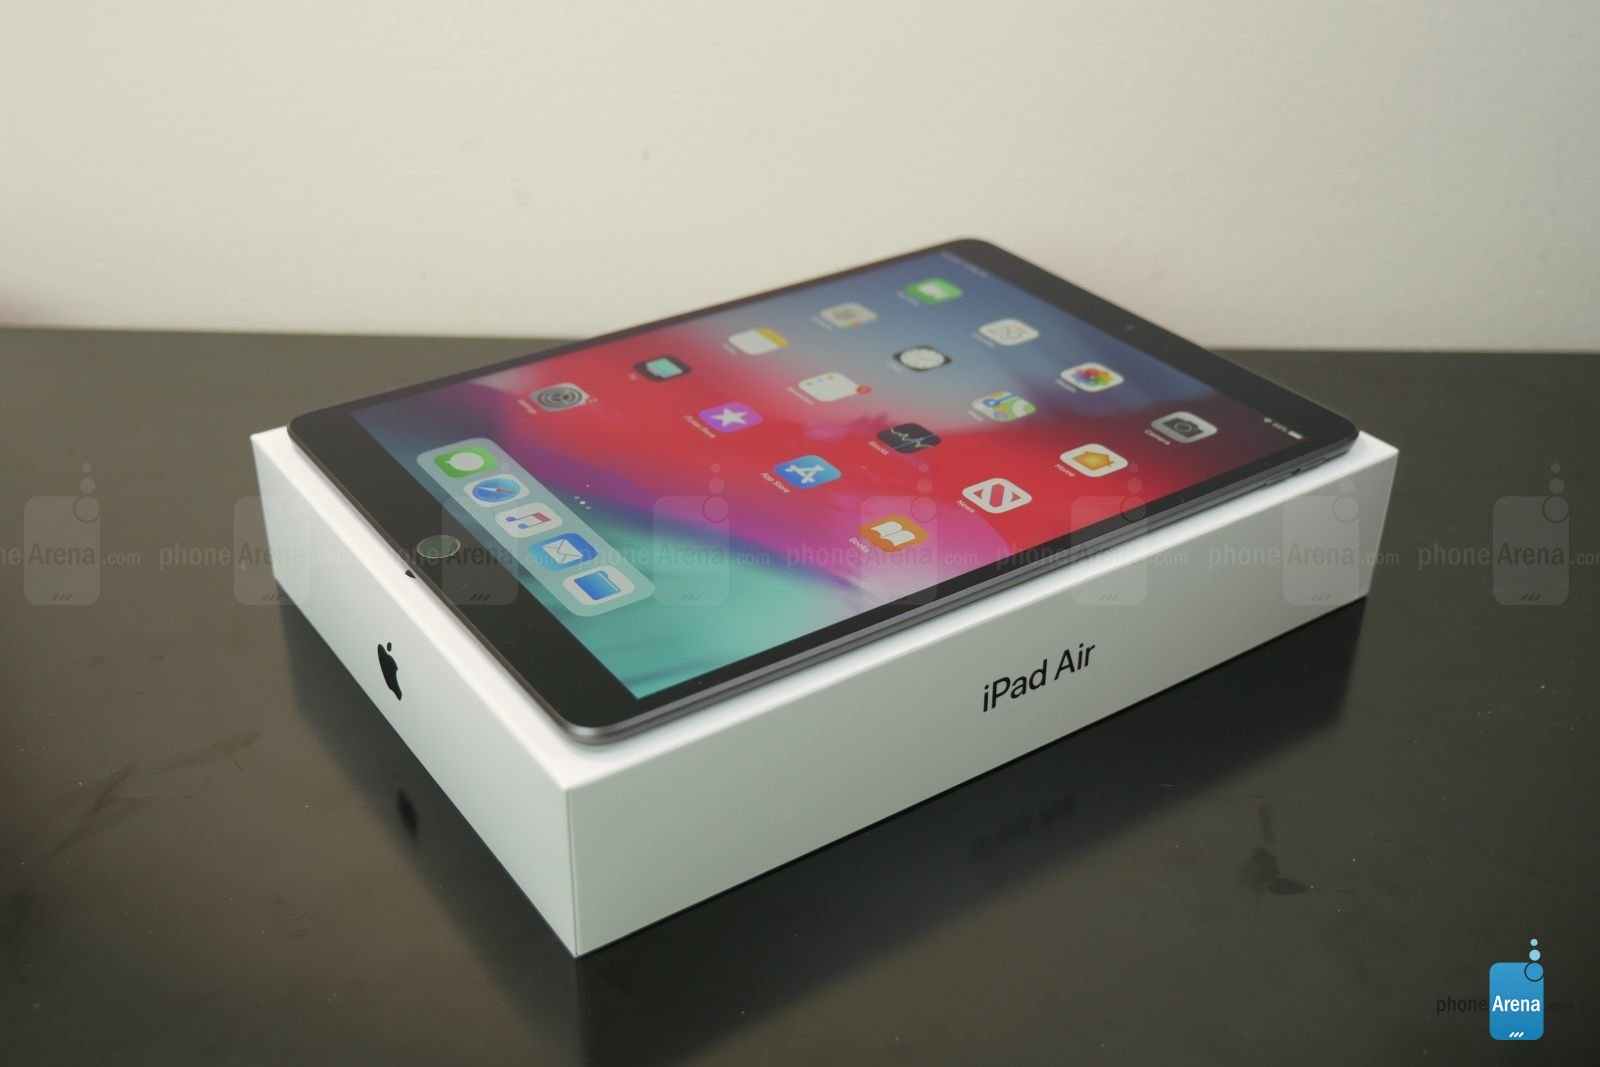 Apple iPad Air 2019 unboxing 1